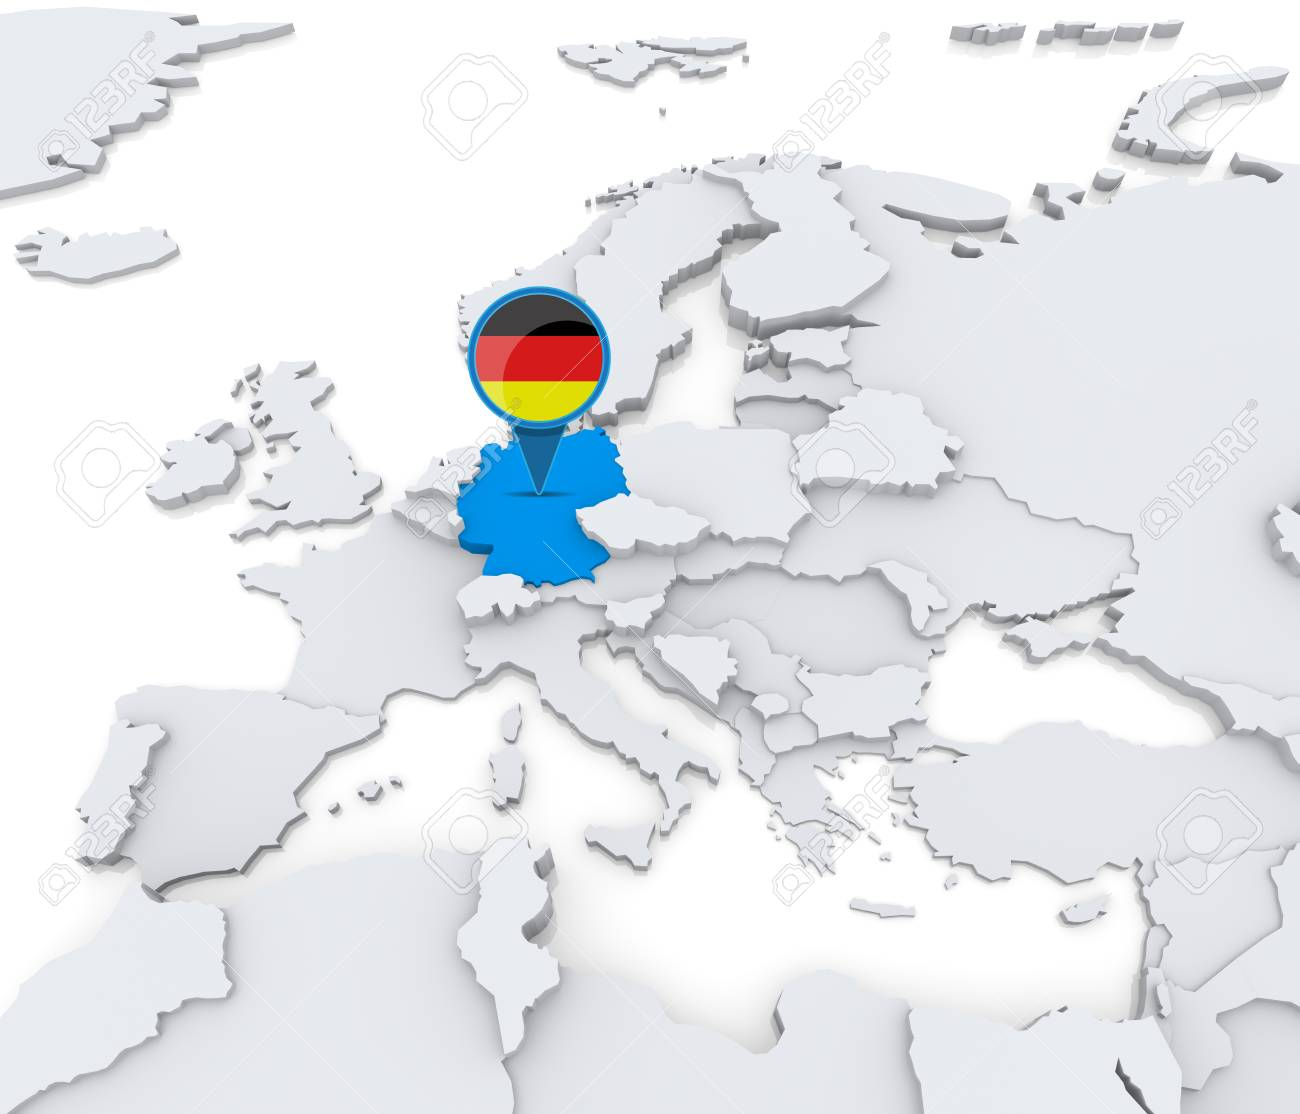 Map Of Europe With Germany Highlighted.Highlighted Germany On Map Of Europe With National Flag